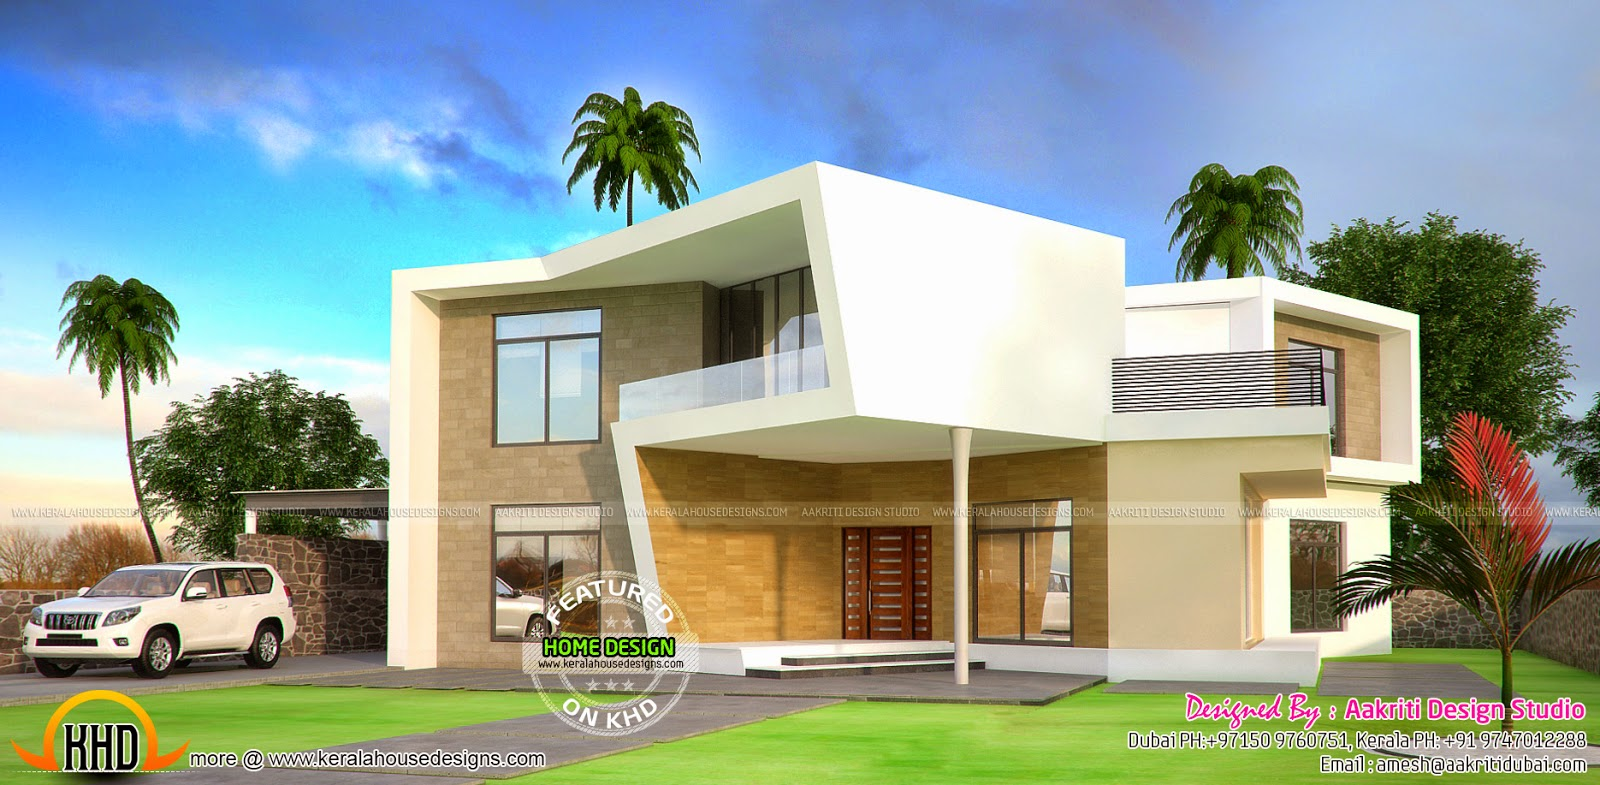 New concept house plan kerala home design and floor plans for House design concept